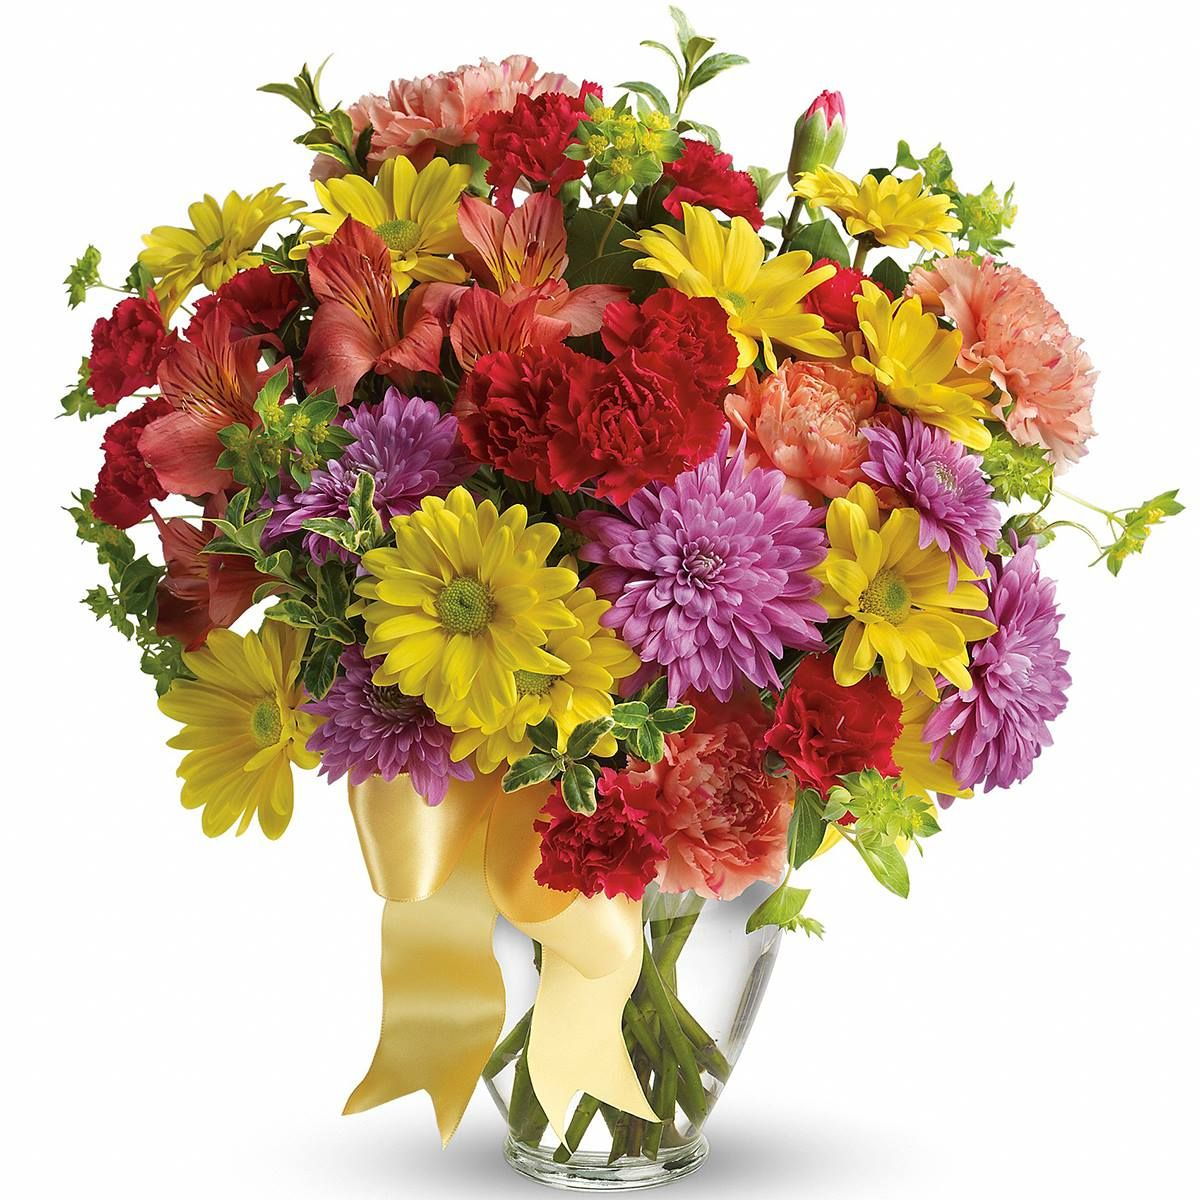 A bouquet sure to add color to anyones day that includes a bouquet sure to add color to anyones day that includes alstroemeria yellow daisies lavender mums orange carnations and more tev31 7 izmirmasajfo